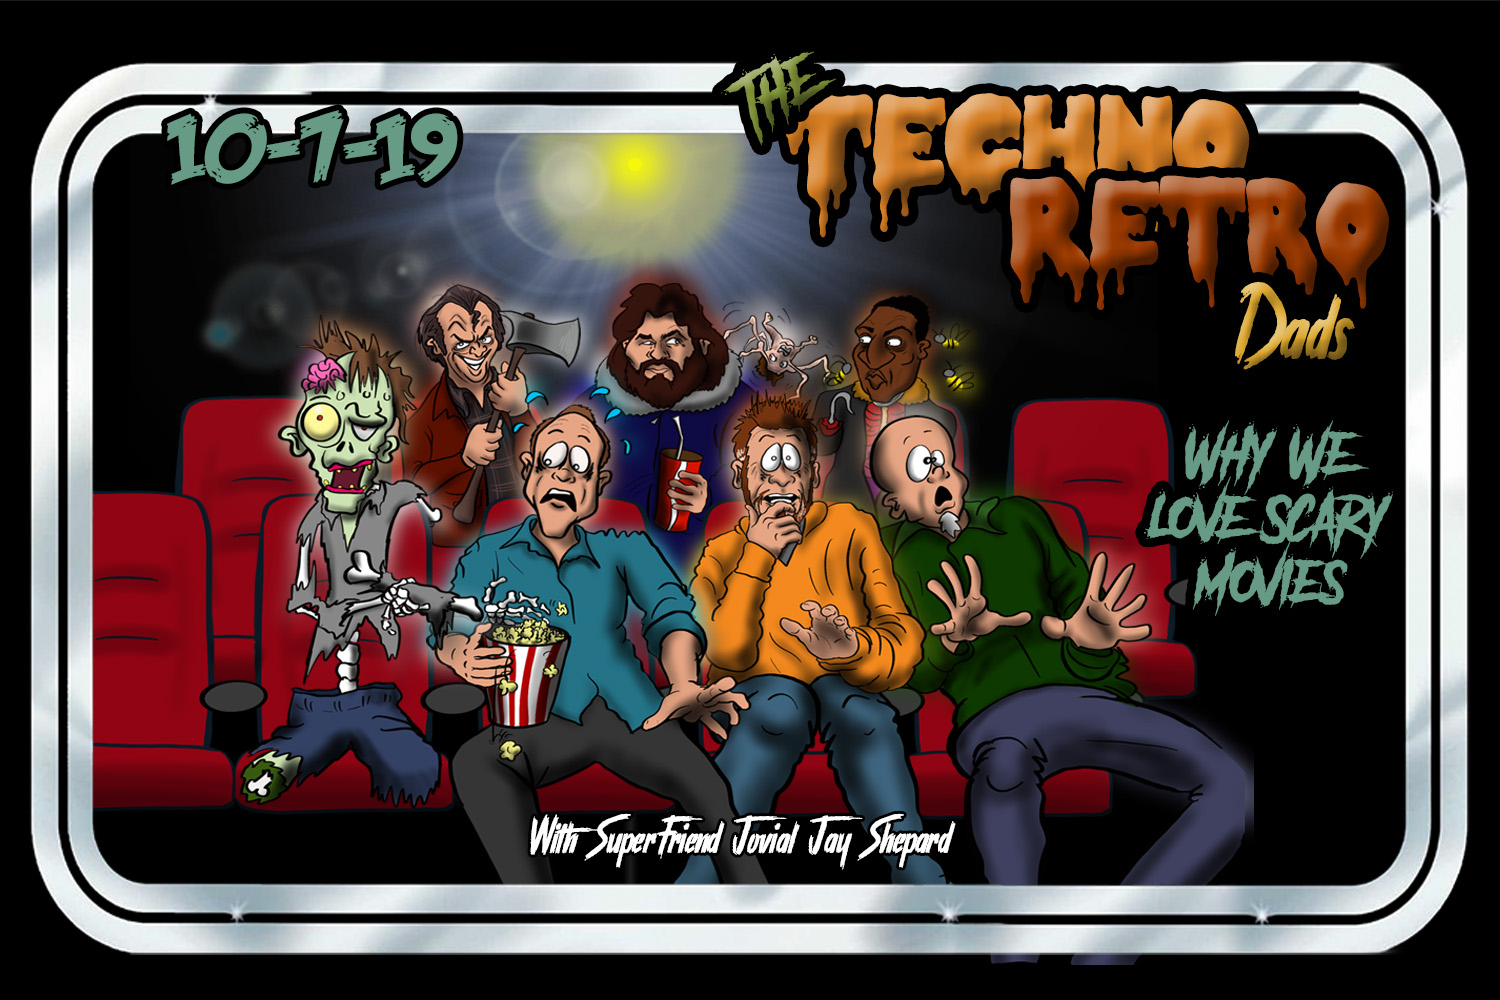 TechnoRetro Dads horror movies with Jovial Jay